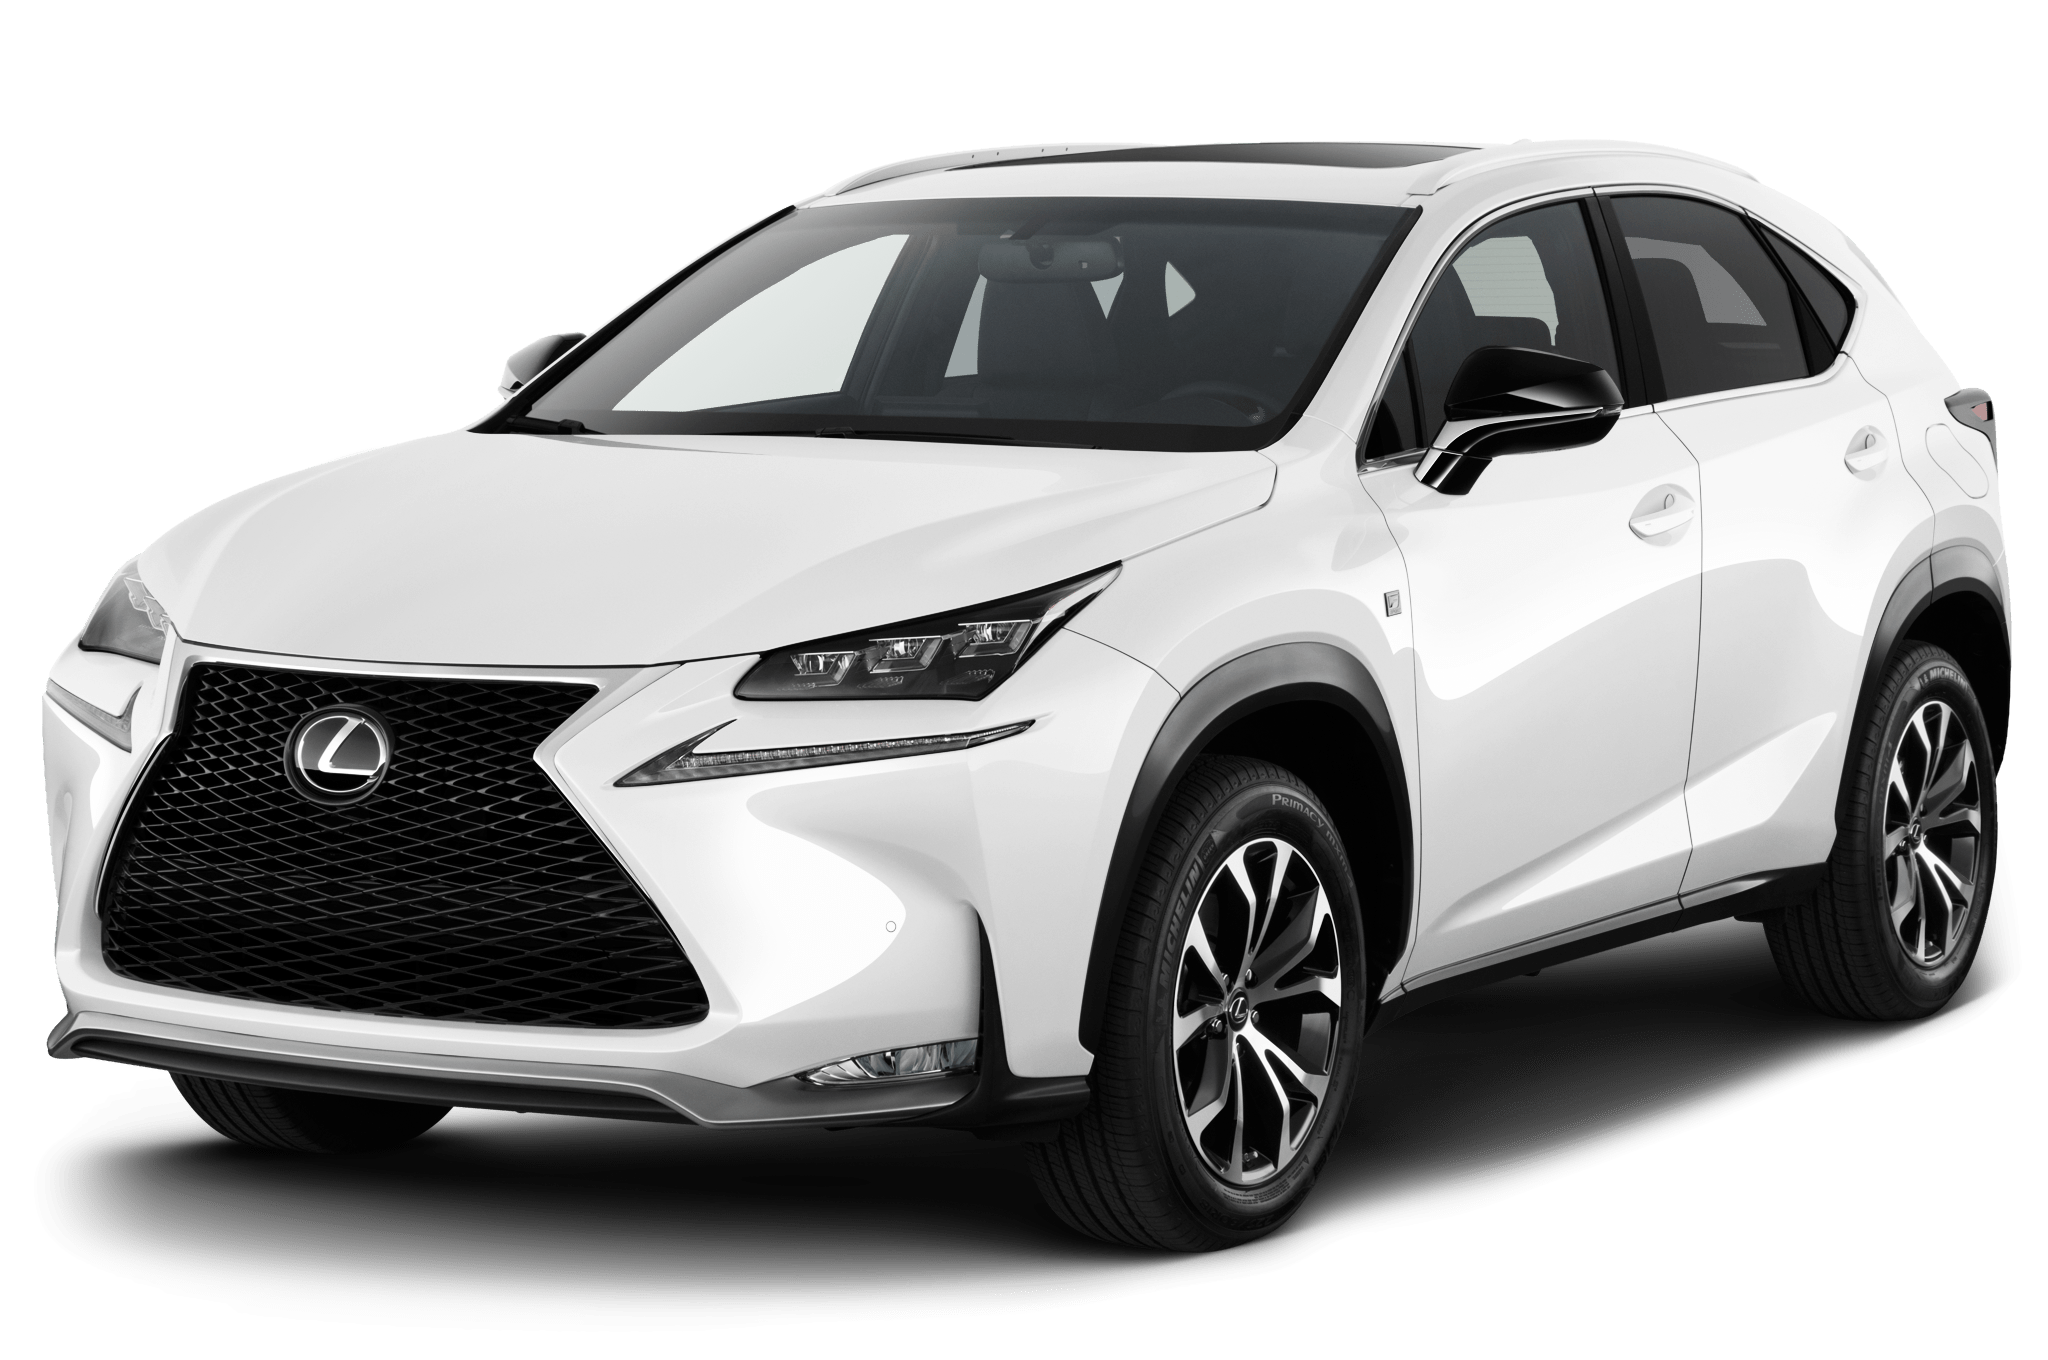 Lexus Service And Repairs By Top Rated Mechanics